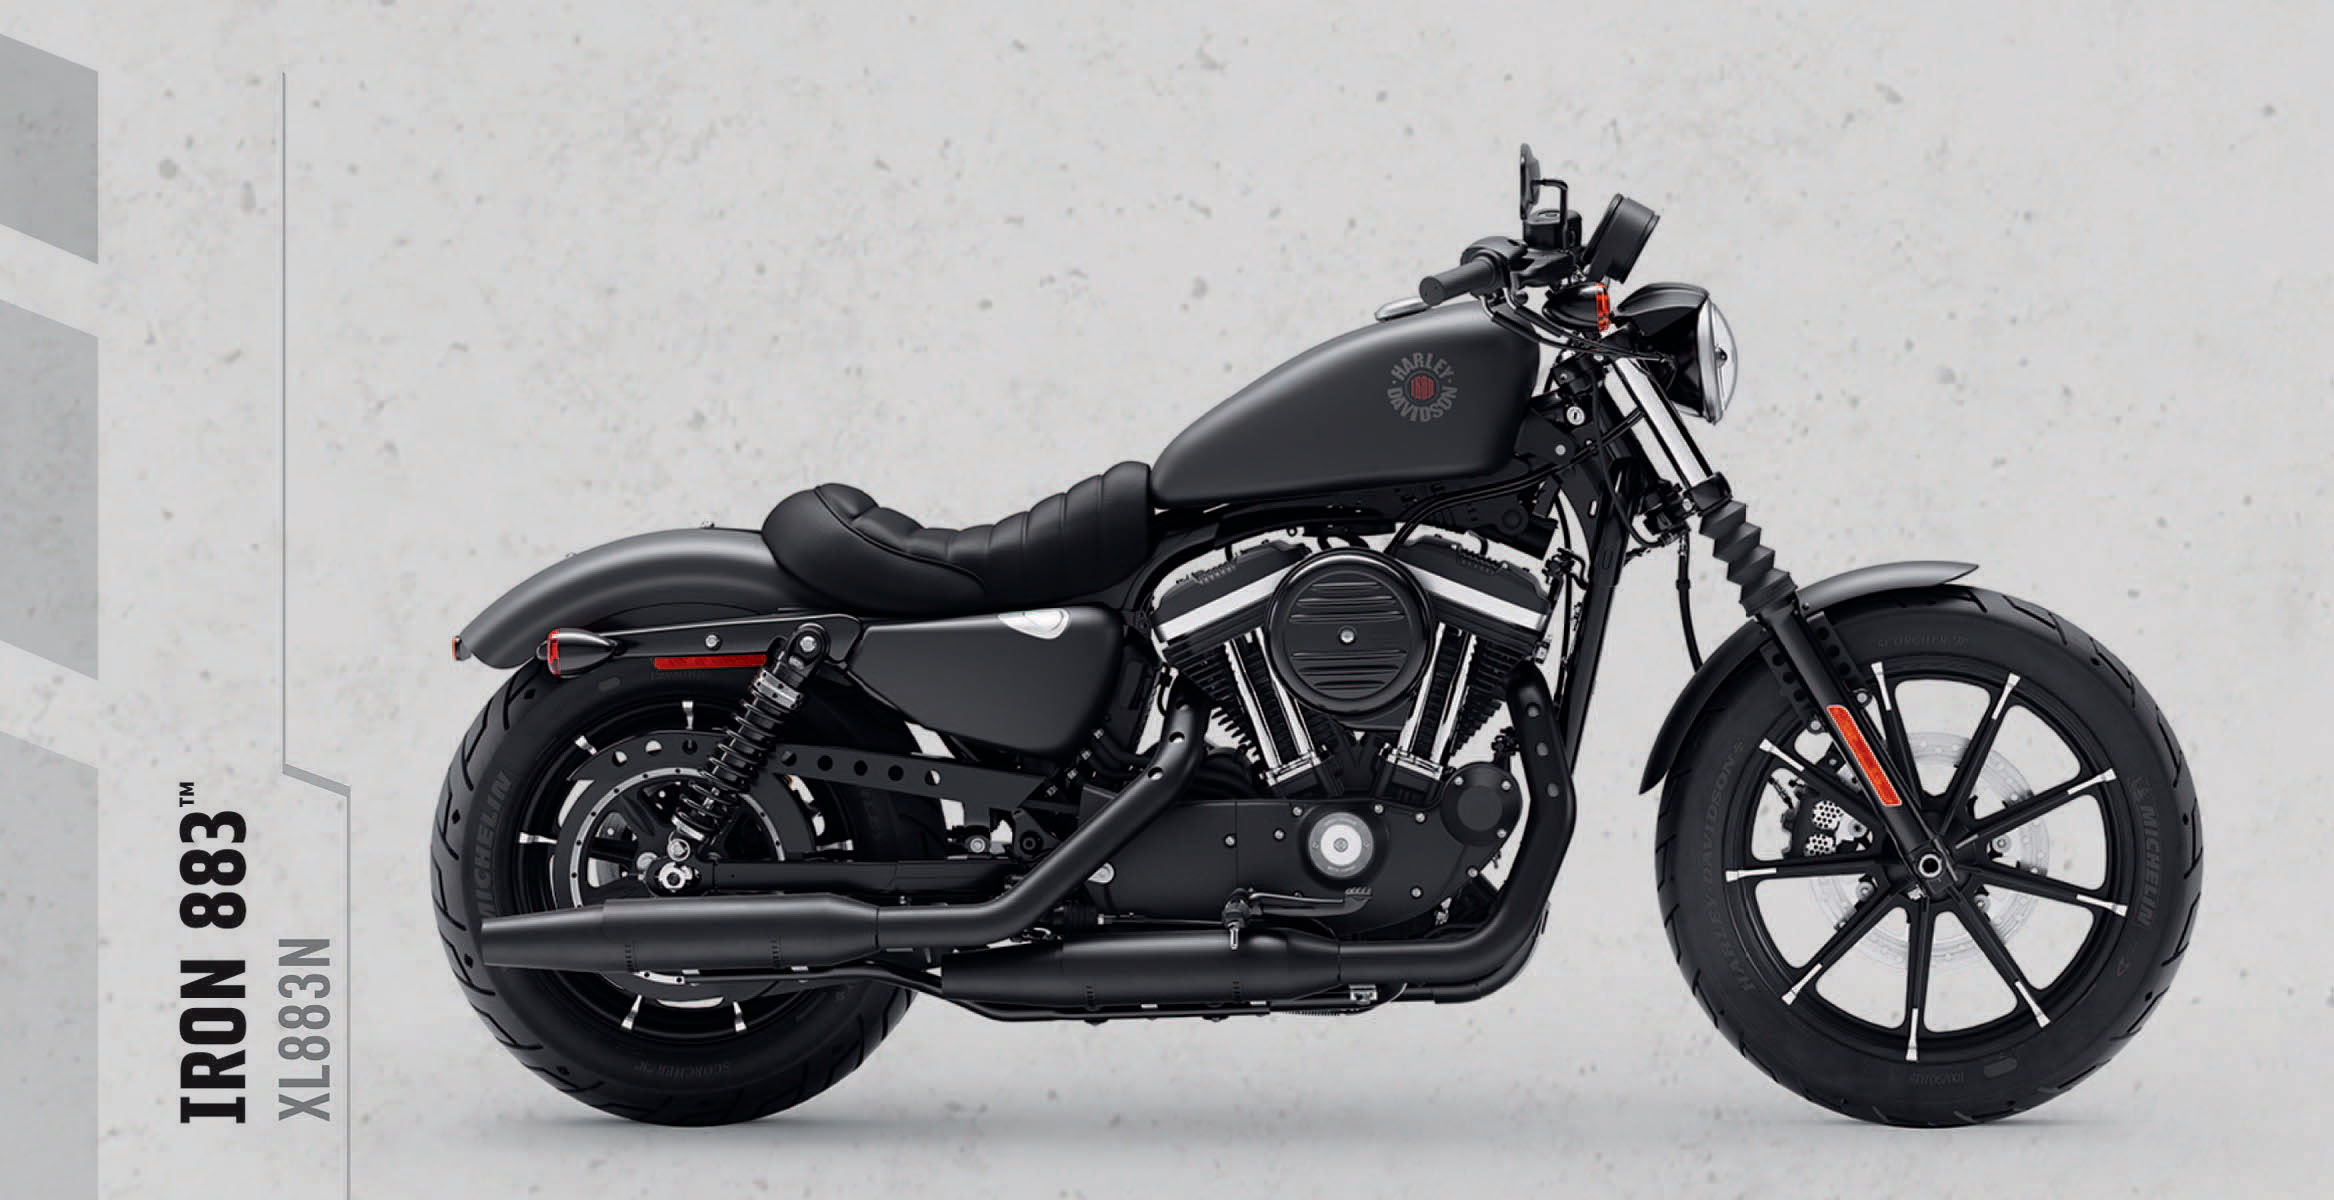 Iron 883   An original icon of the Harley-Davidson Dark Custom style. It sets the standard for the raw, stripped-down, blacked-out look. Now with fresh, new graphics.